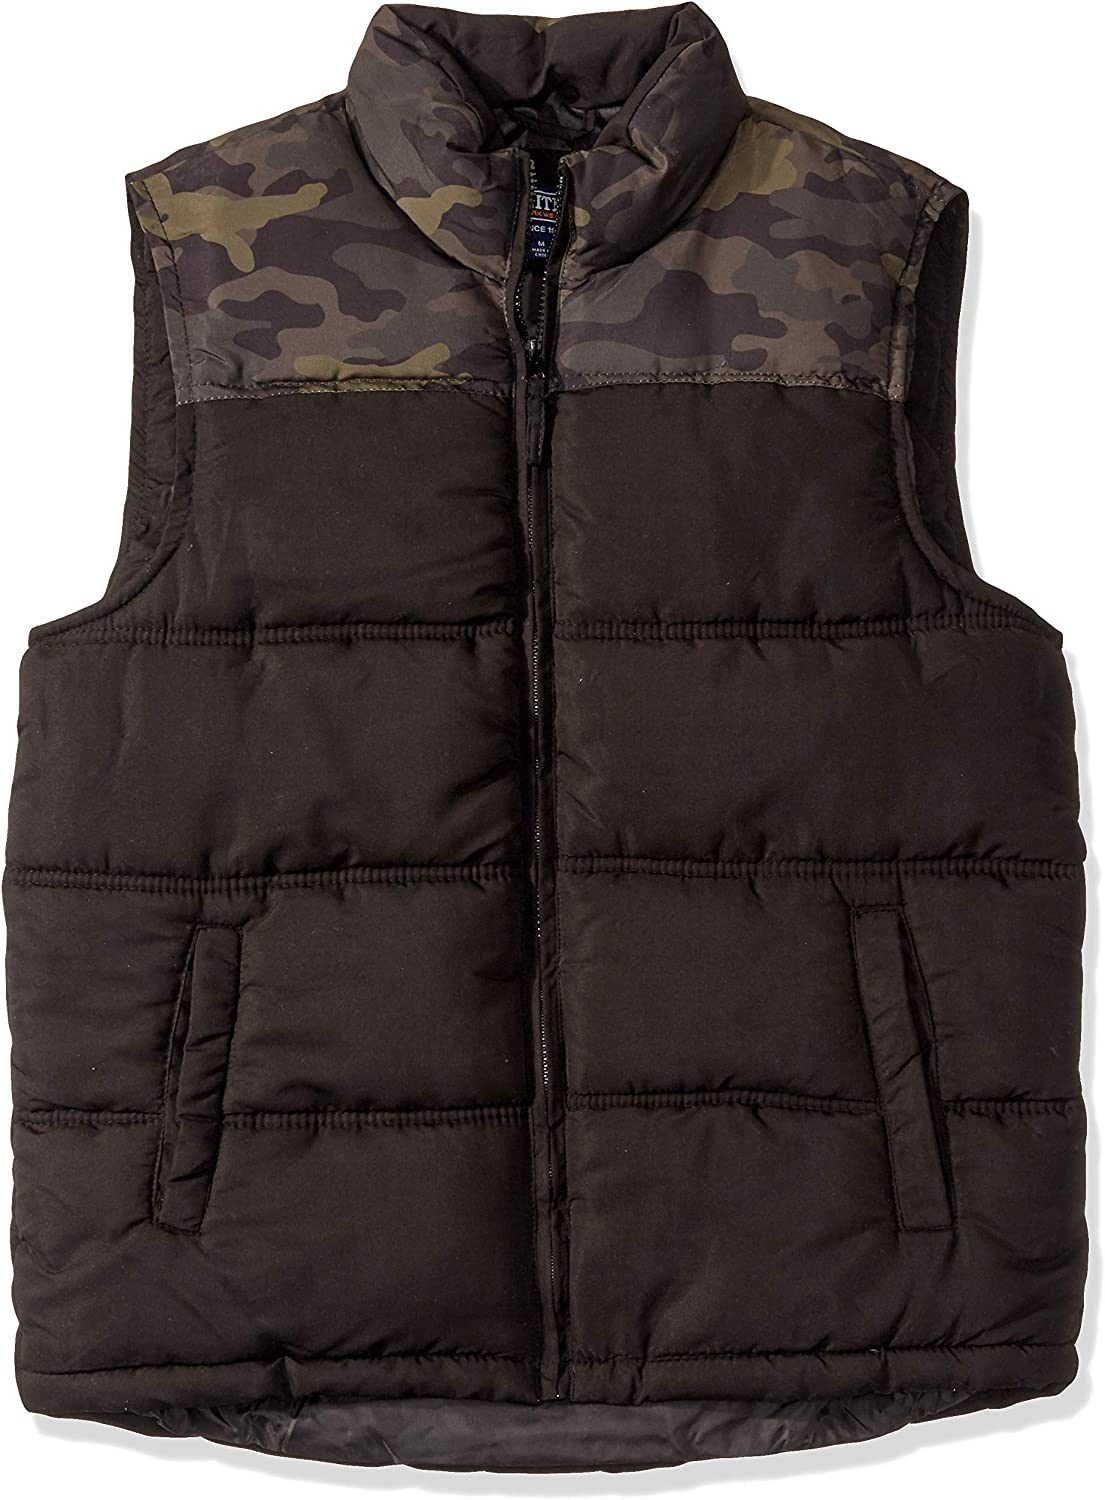 Smiths Workwear Mens Camo Double Insulated Puffer Vest Work Utility Outerwear